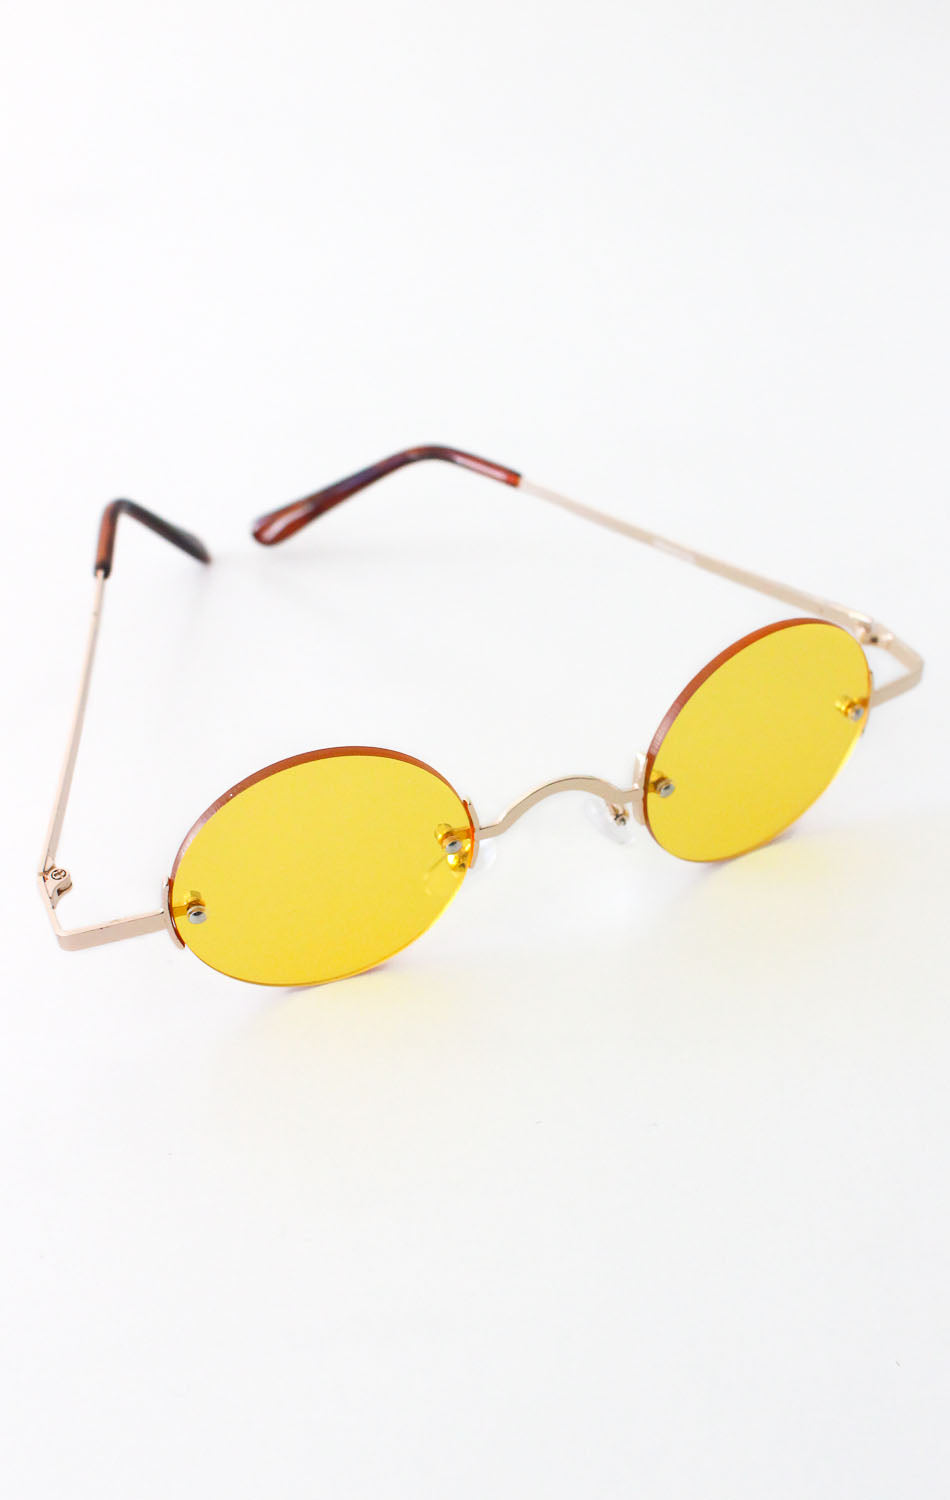 NYCT Clothing Vintage Inspired Round Sunglasses - Yellow